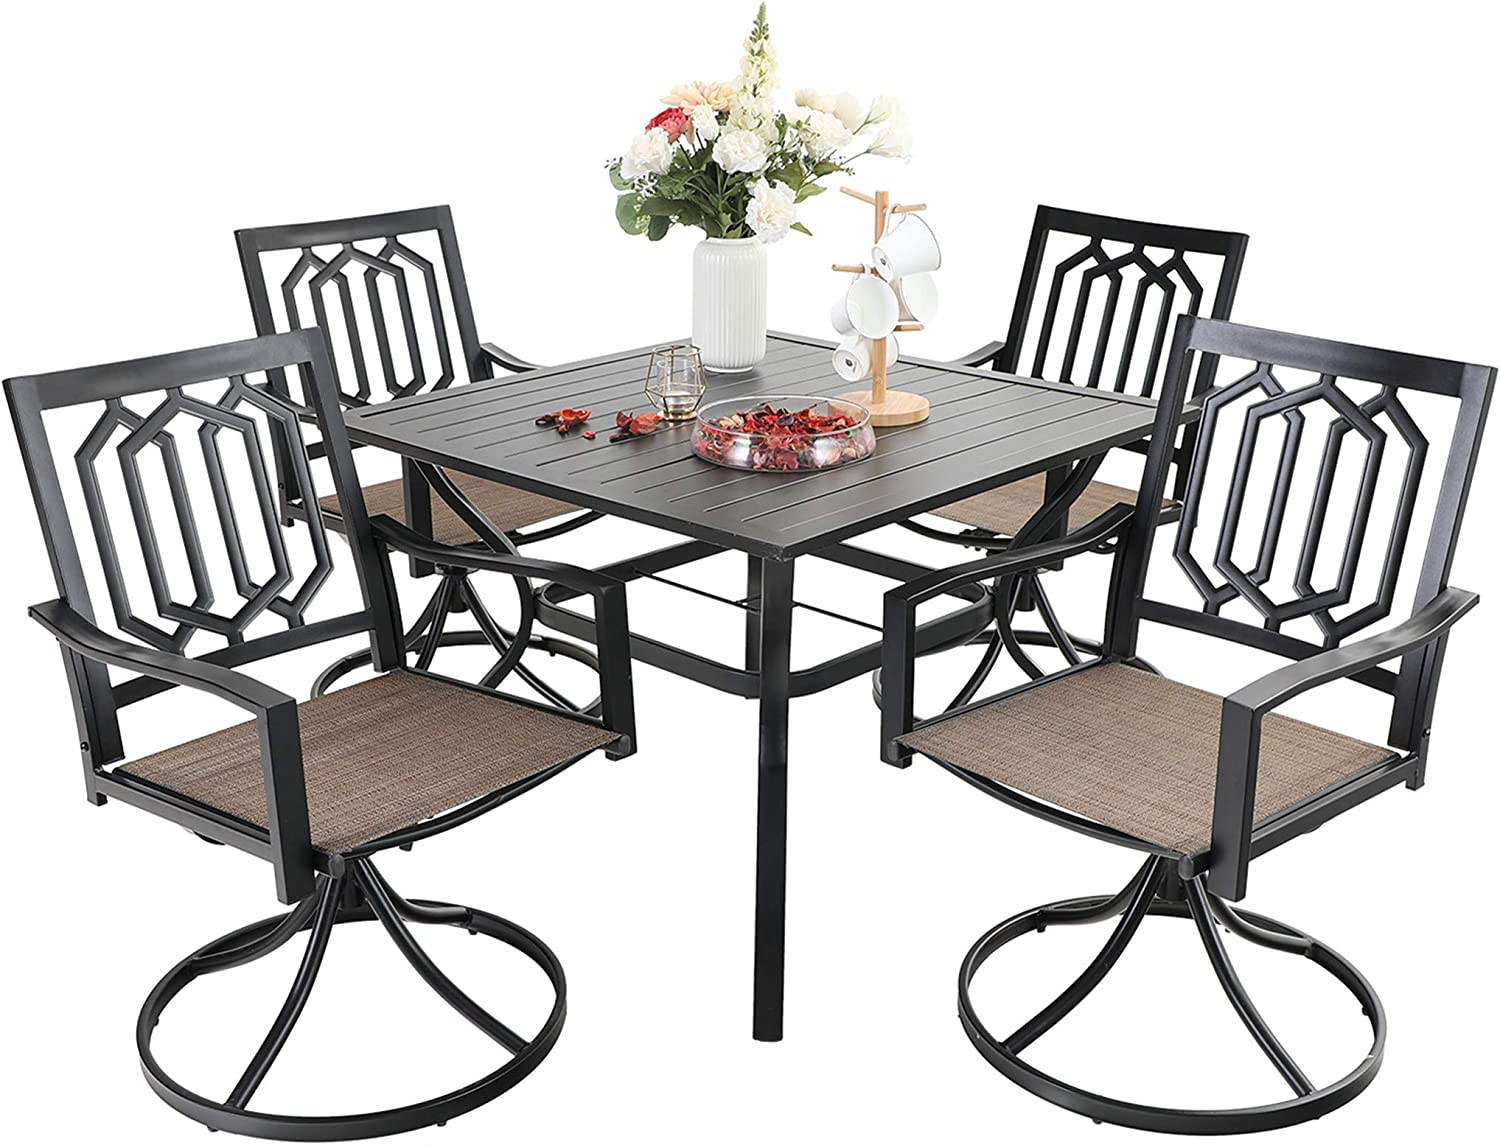 Sophia & William Outdoor 5 Pieces Dining Set with 4 Swivel Metal Chairs of Textilene Seat and 1 Square Table with Umbrella Hole, Modern Patio Furniture for Poolside, Porch, Patio, Backyard